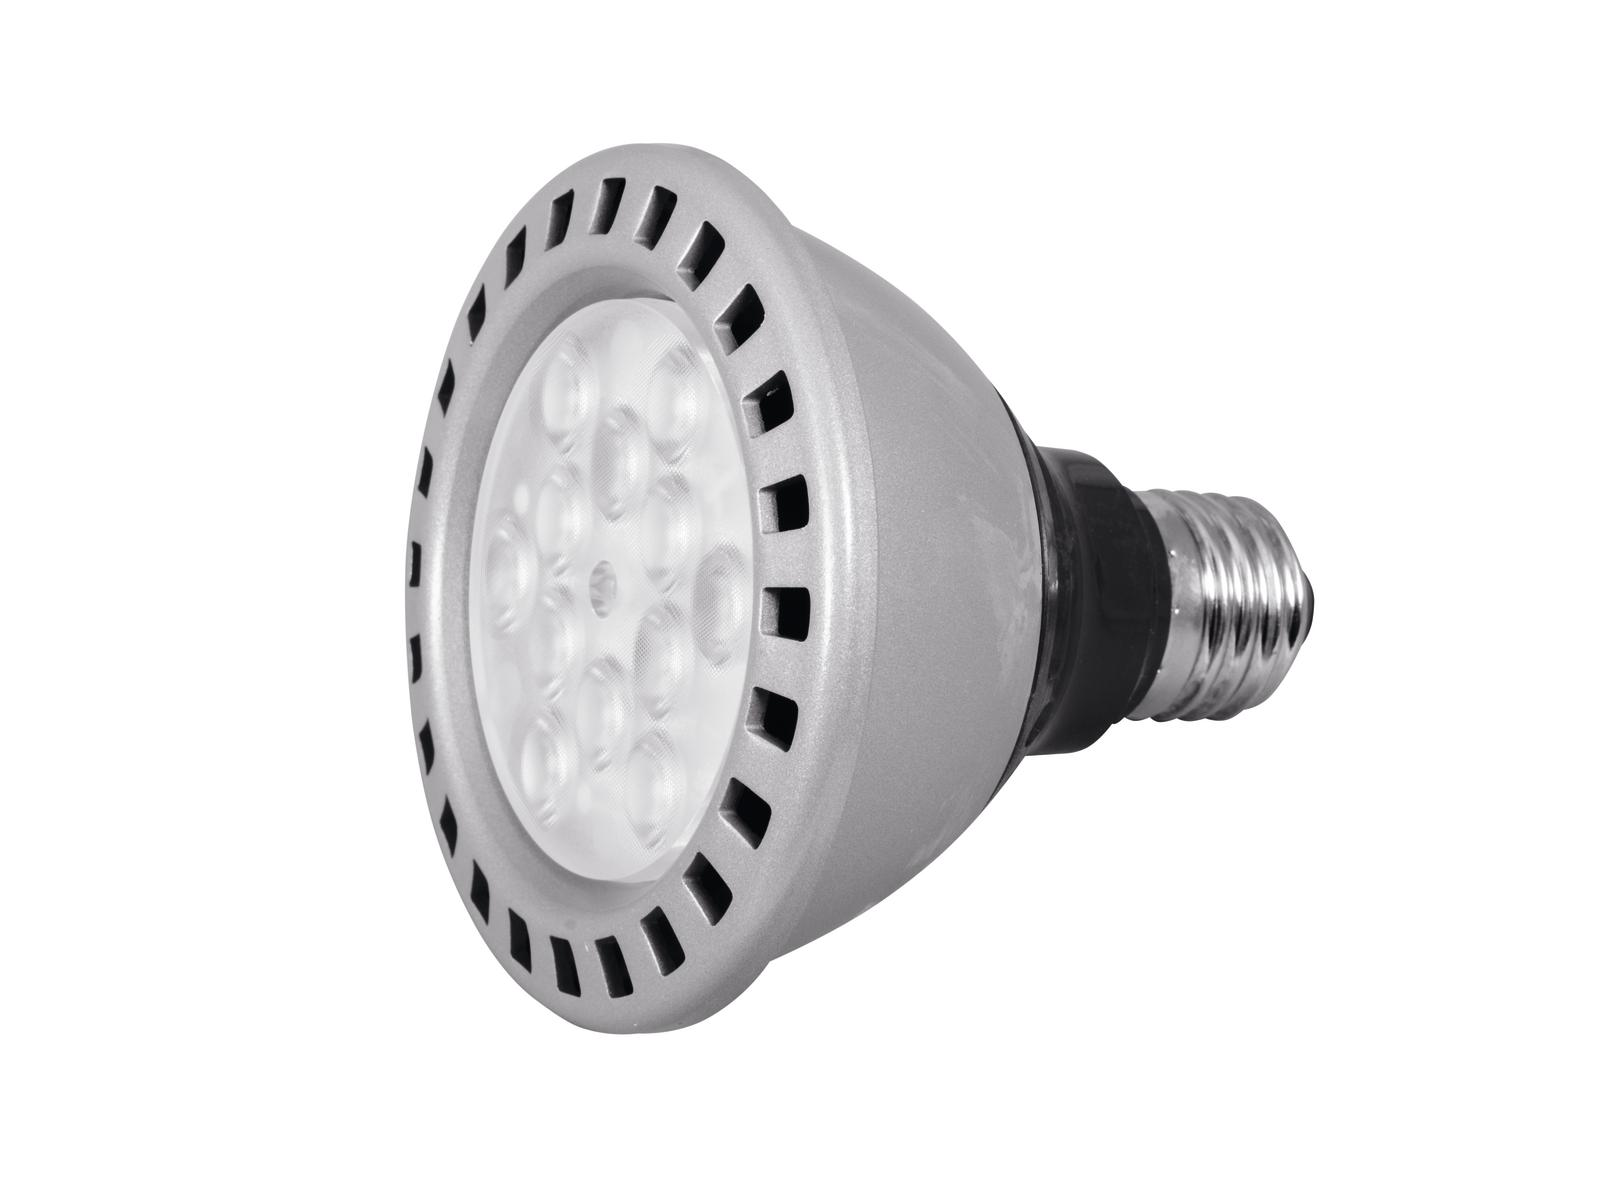 PHILIPS LED PAR-30 9,5 W 2700K 25° DIM